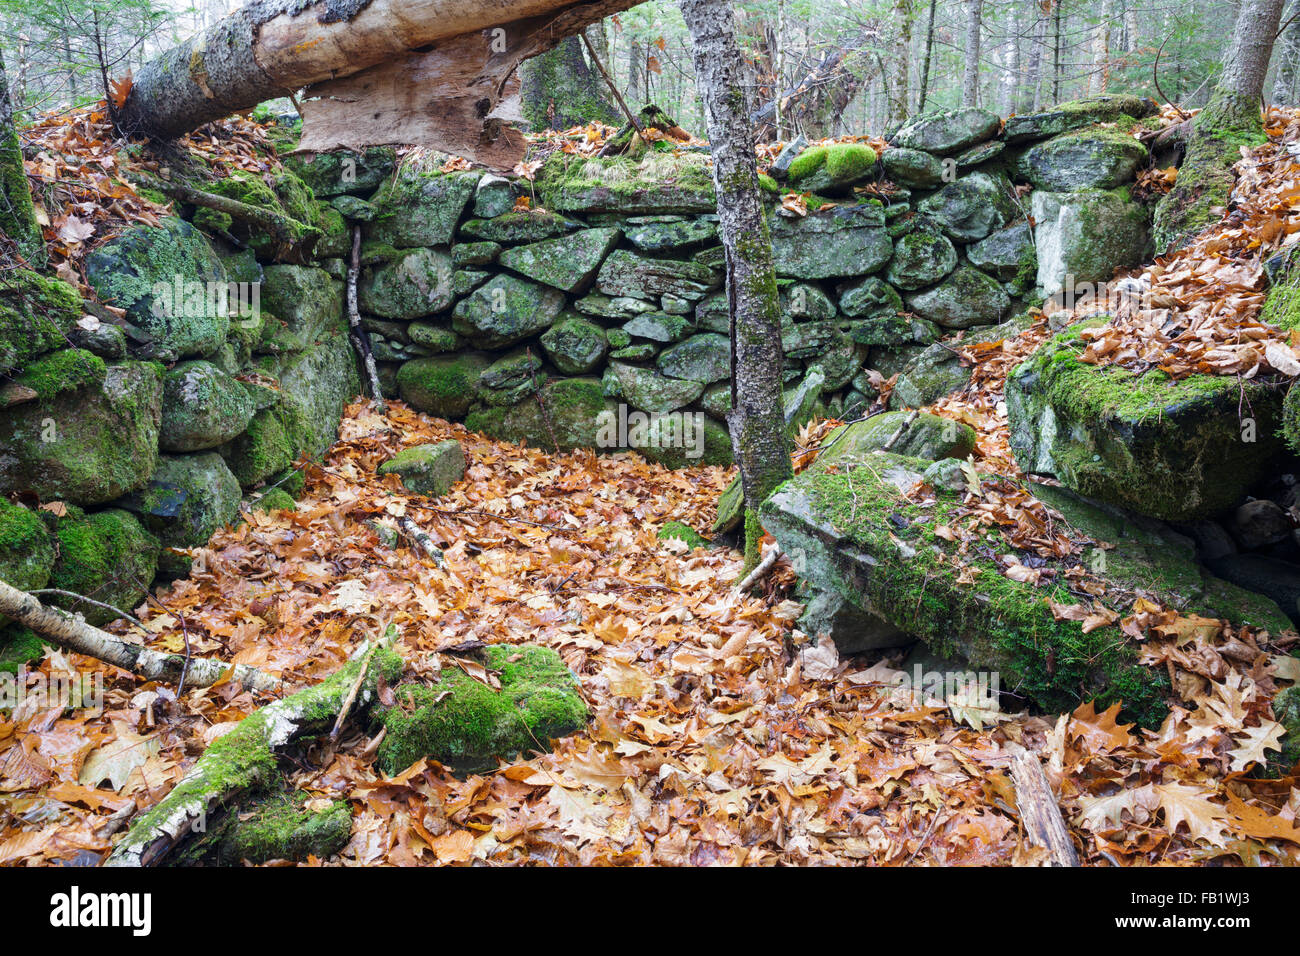 The stone work of an abandoned cellar hole along the old North and South Road (now Long Pond Road) in Benton New H&shire. & The stone work of an abandoned cellar hole along the old North and ...